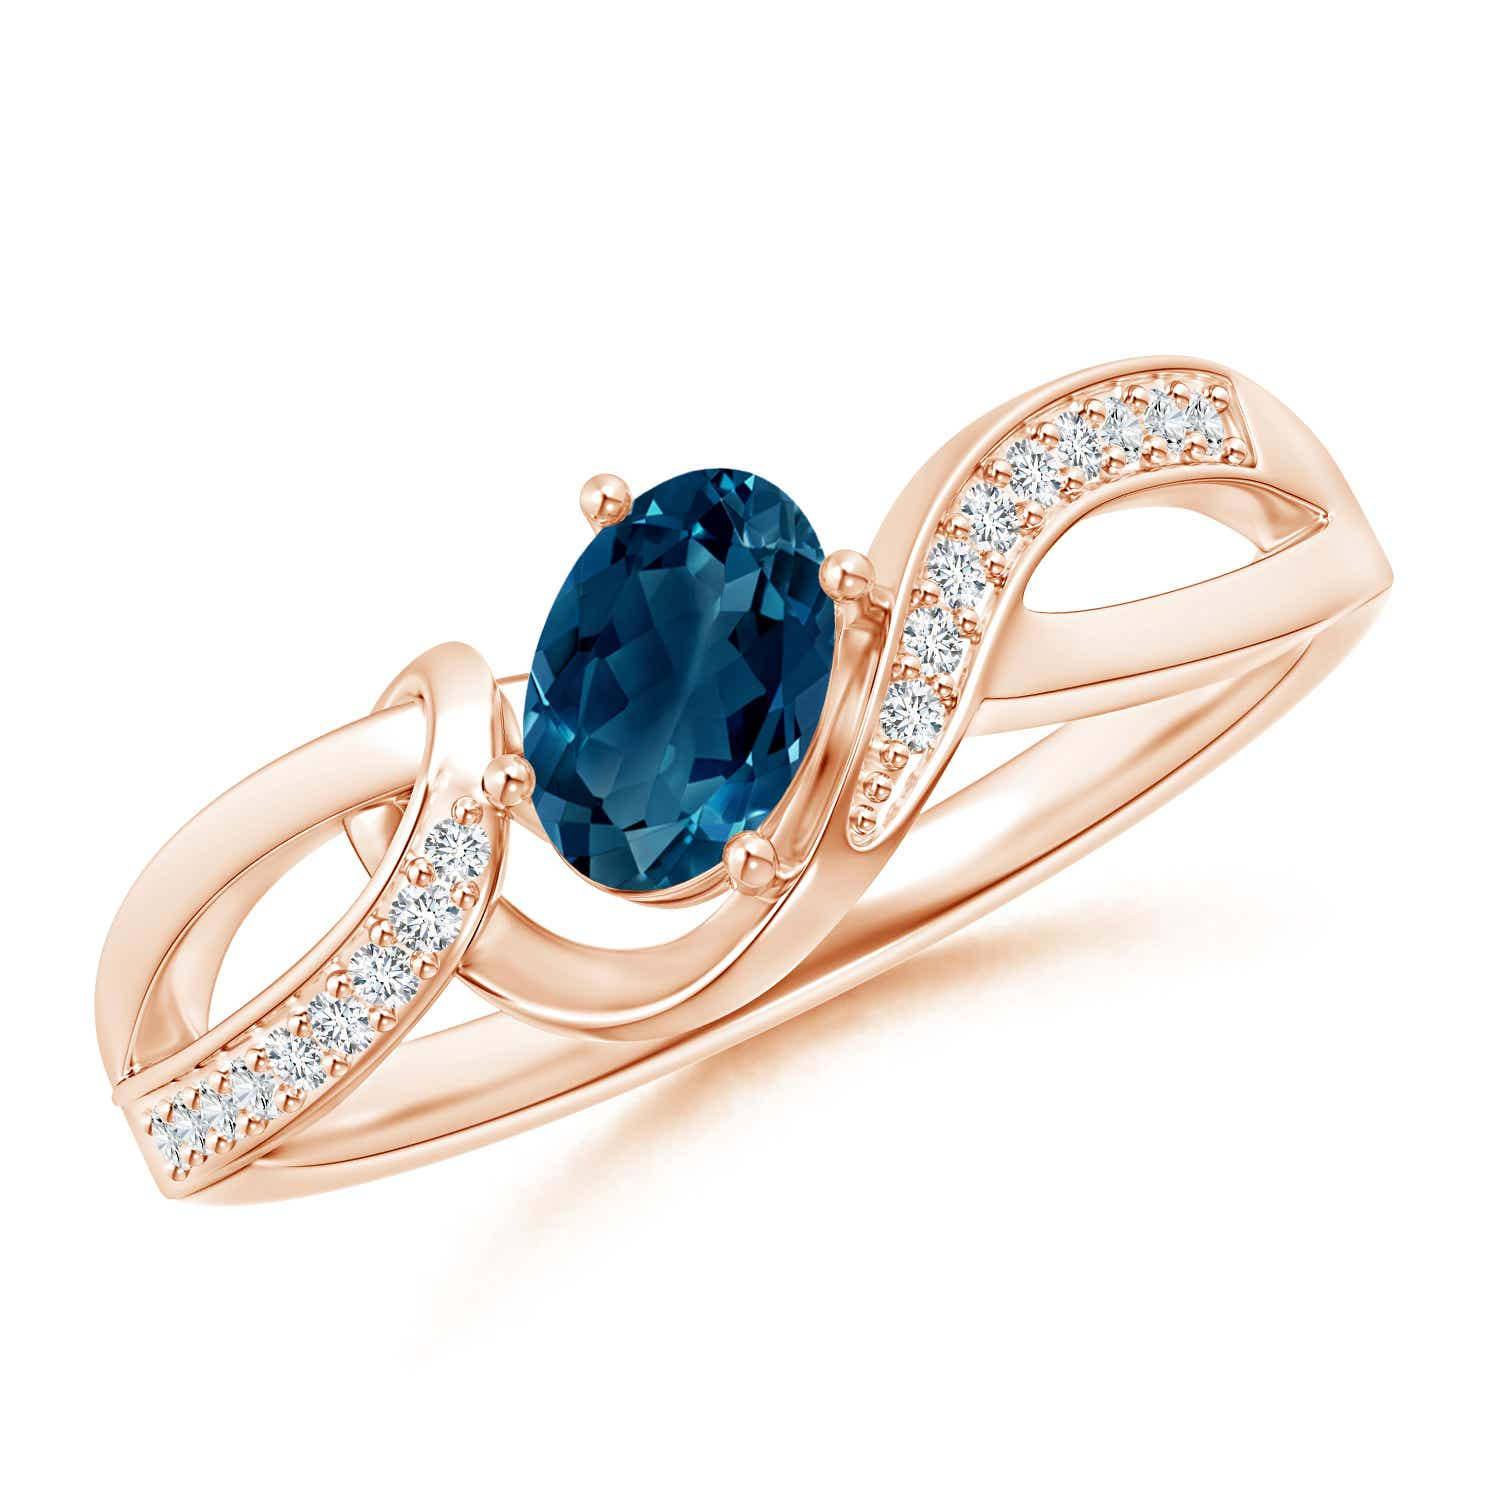 Angara Natural London Blue Topaz Engagement Ring in White Gold 9c9Tr